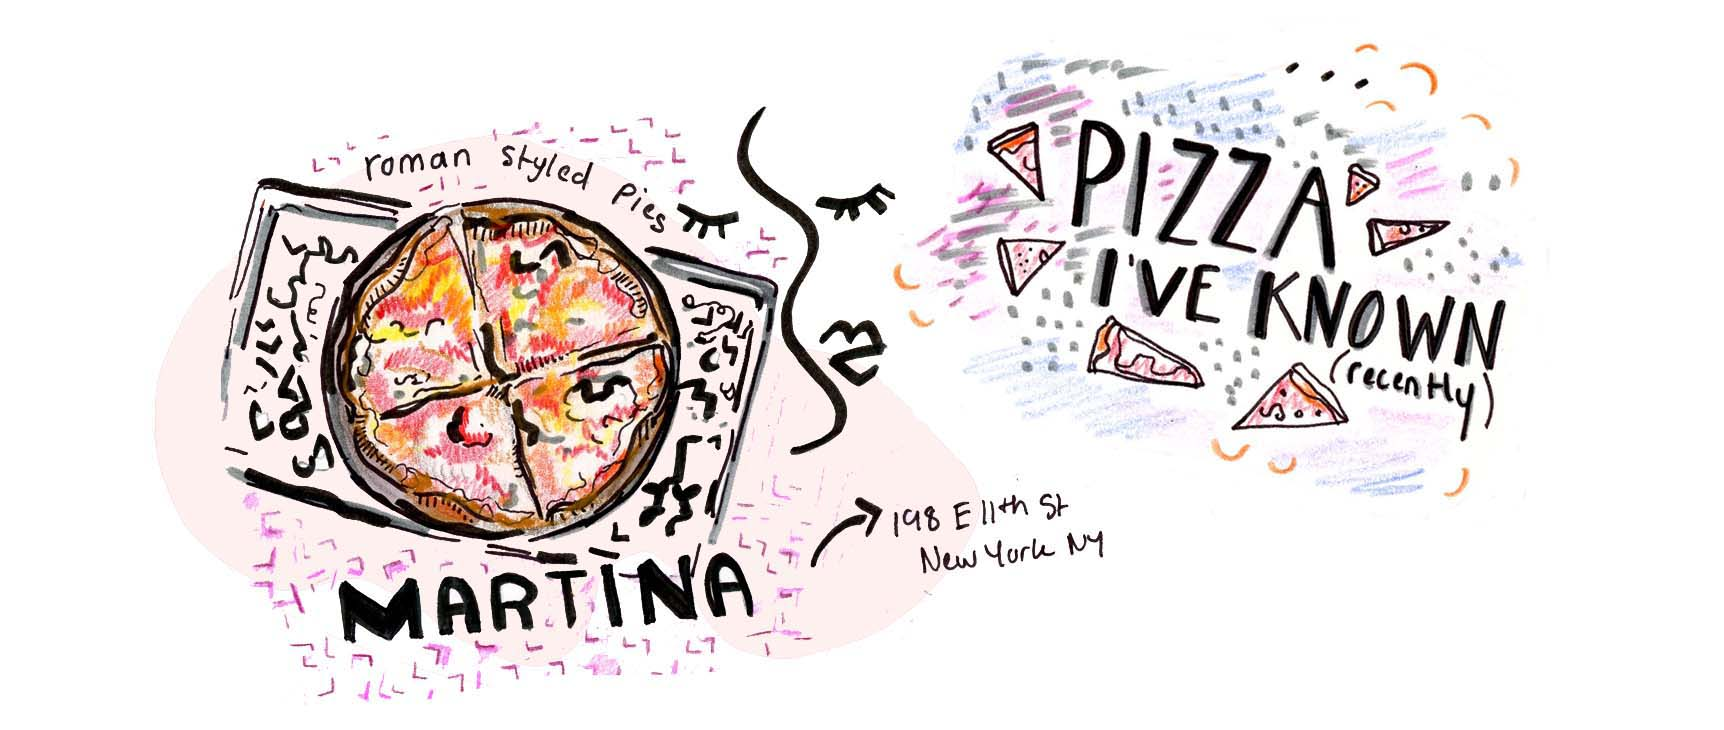 PizzaIveKnown_Martina